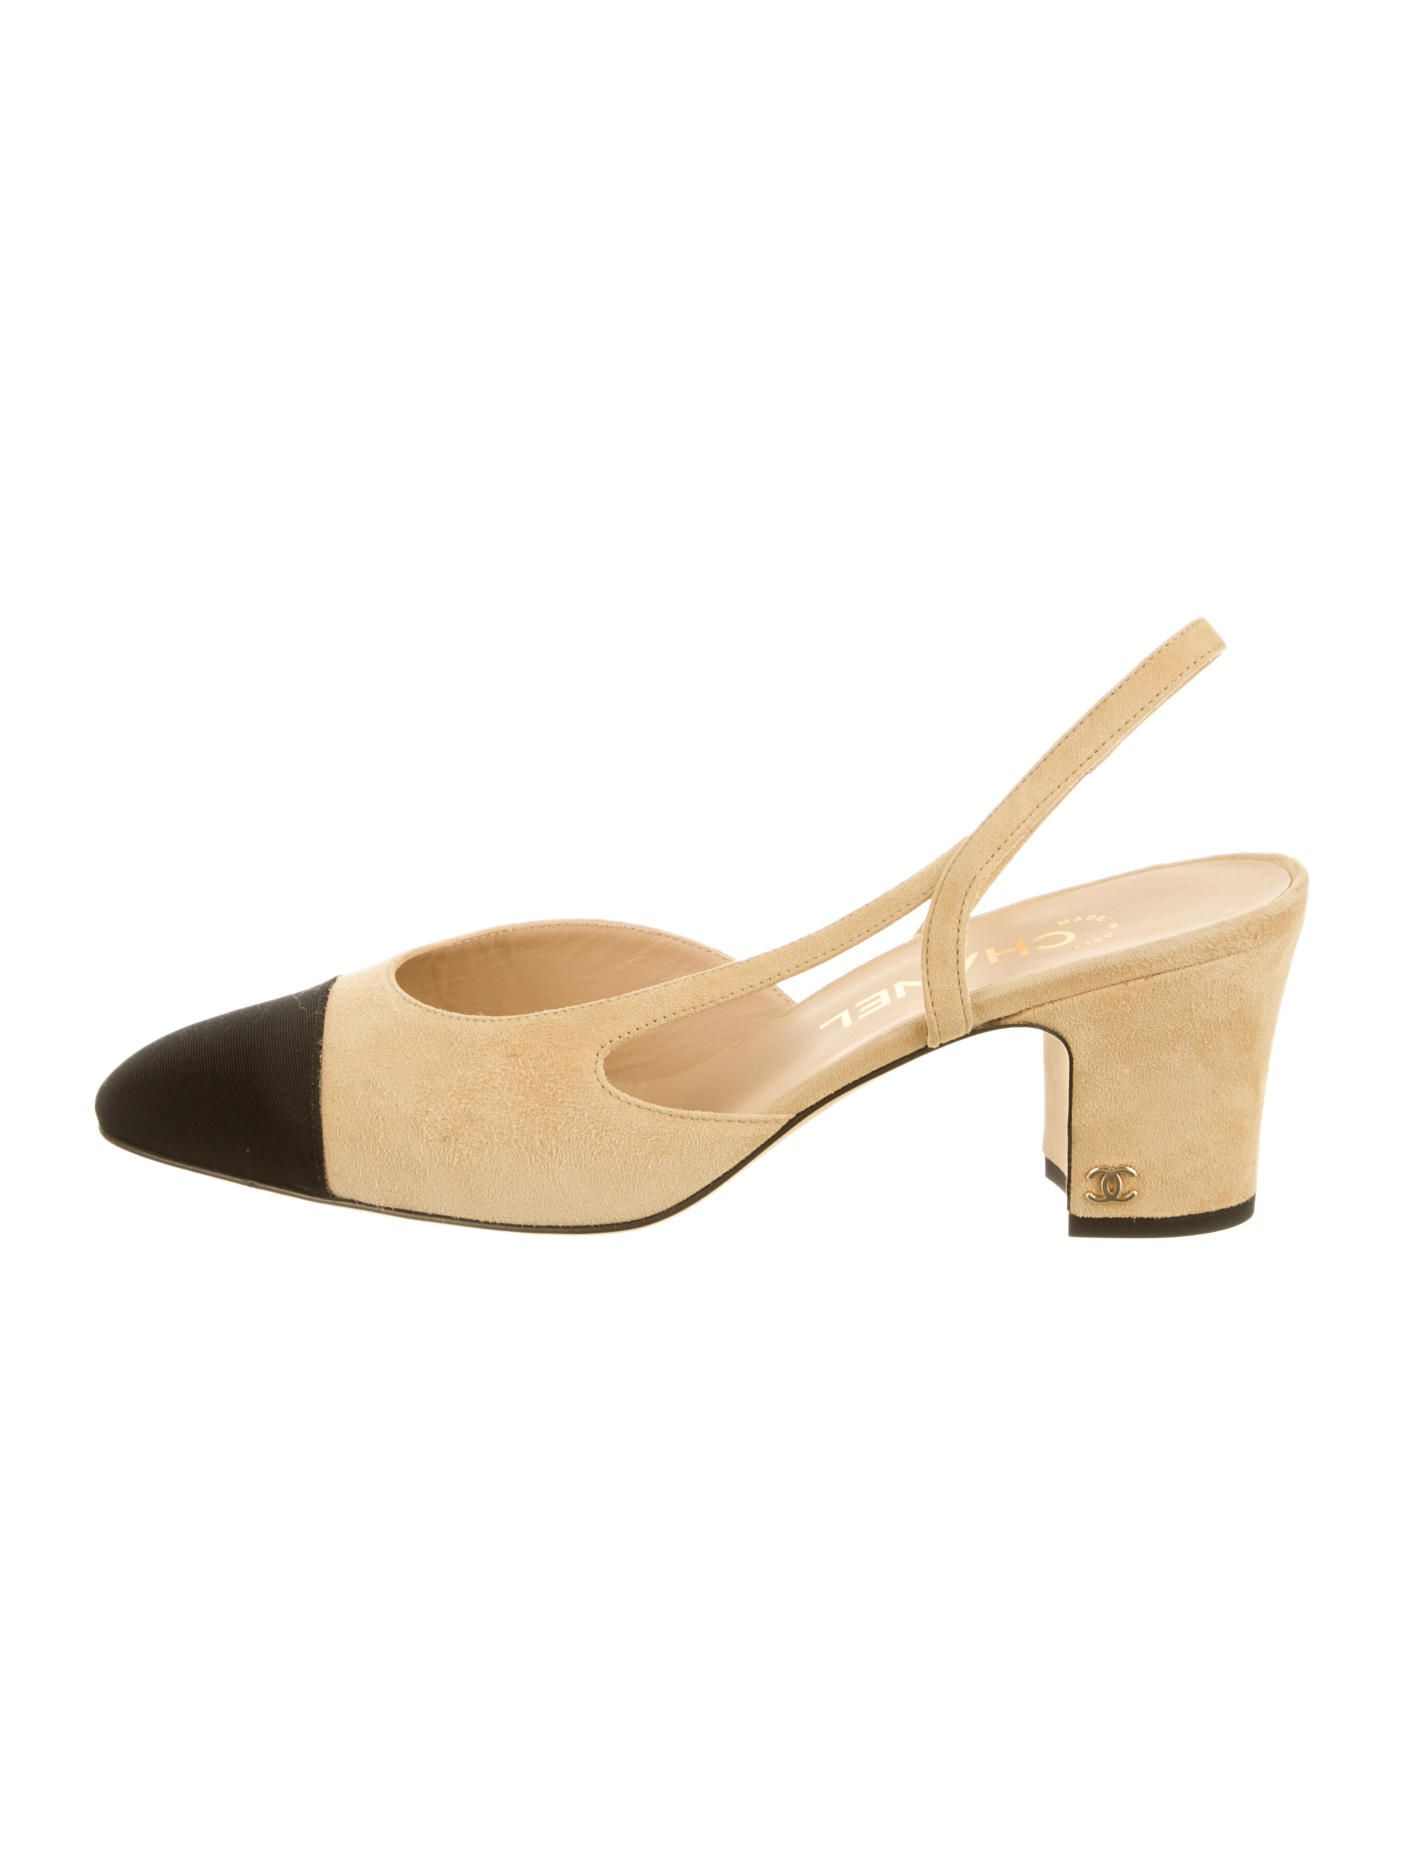 8b39261c17598 Tan suede Chanel round-toe slingback pumps with black cap toes, tonal  stitching throughout and gold-tone CC at covered block heels.